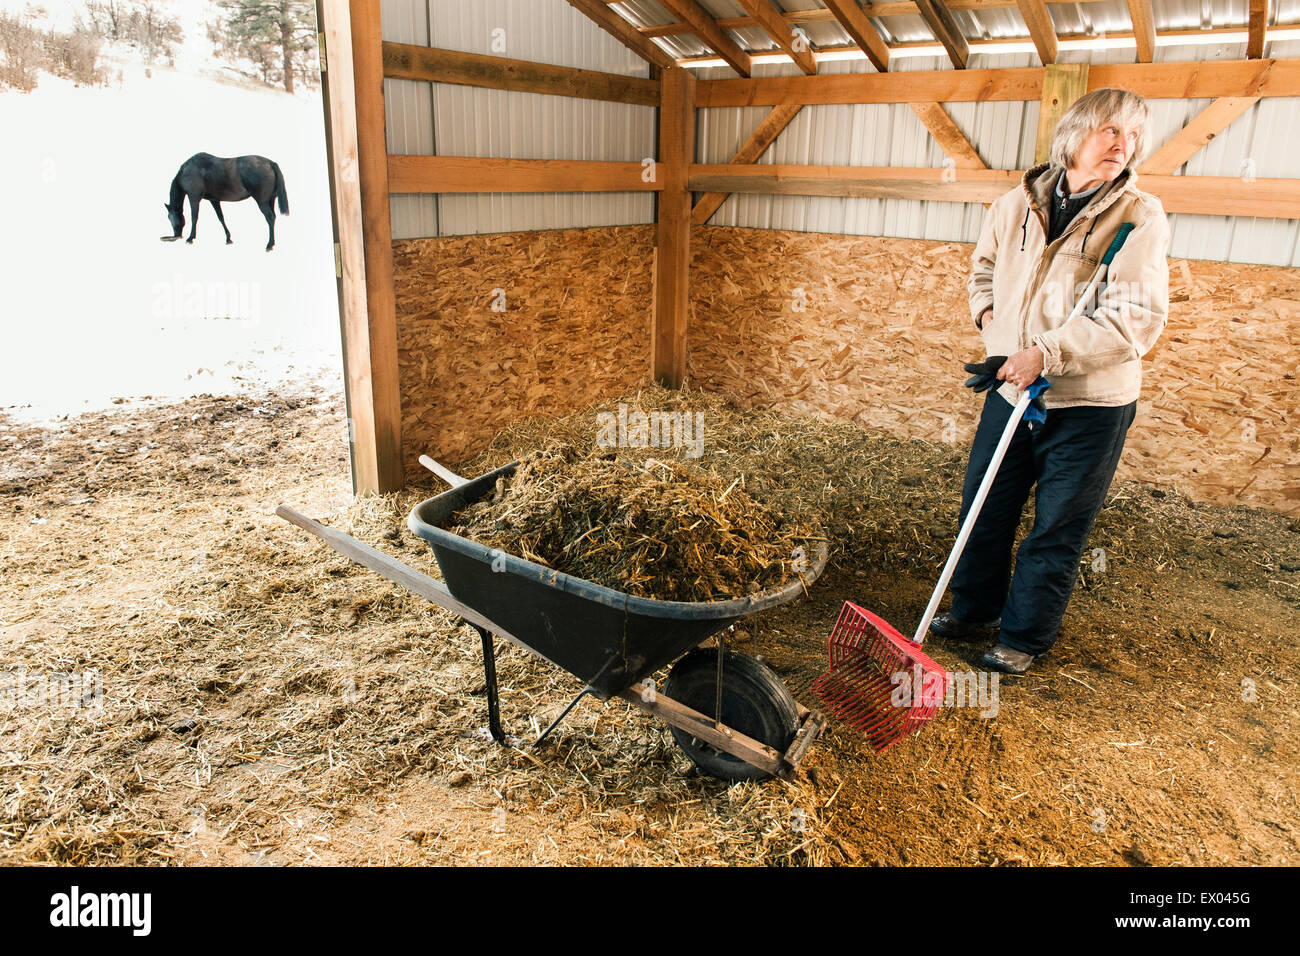 Senior adult woman in stable, filling wheelbarrow with hay - Stock Image